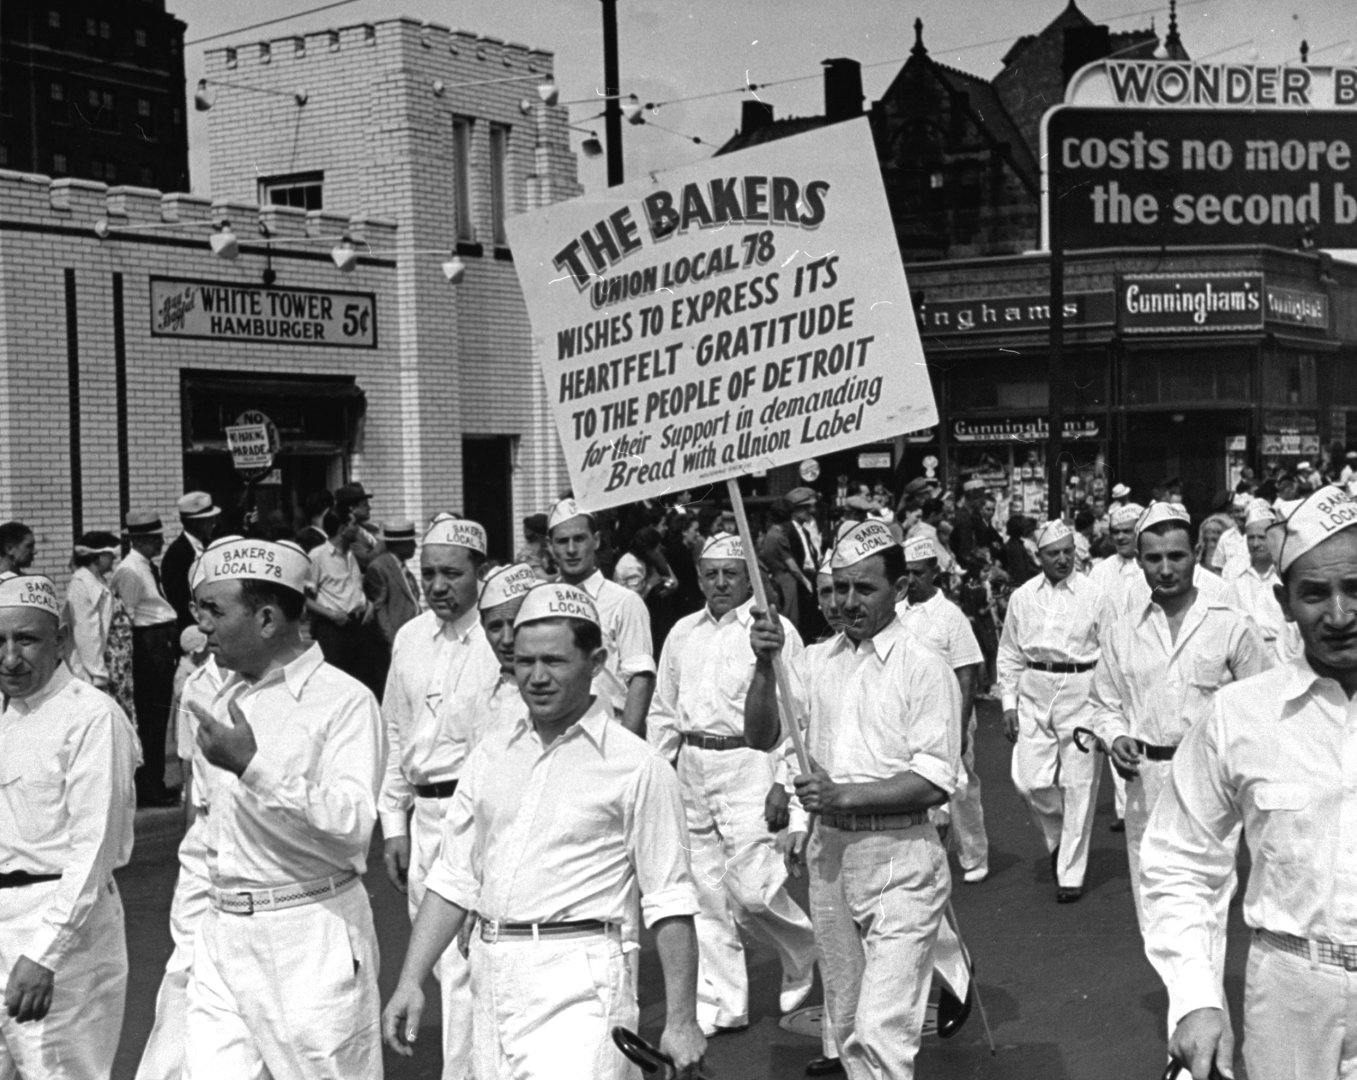 The Bakers Union marching through the Labor Day Parade | Photo by John